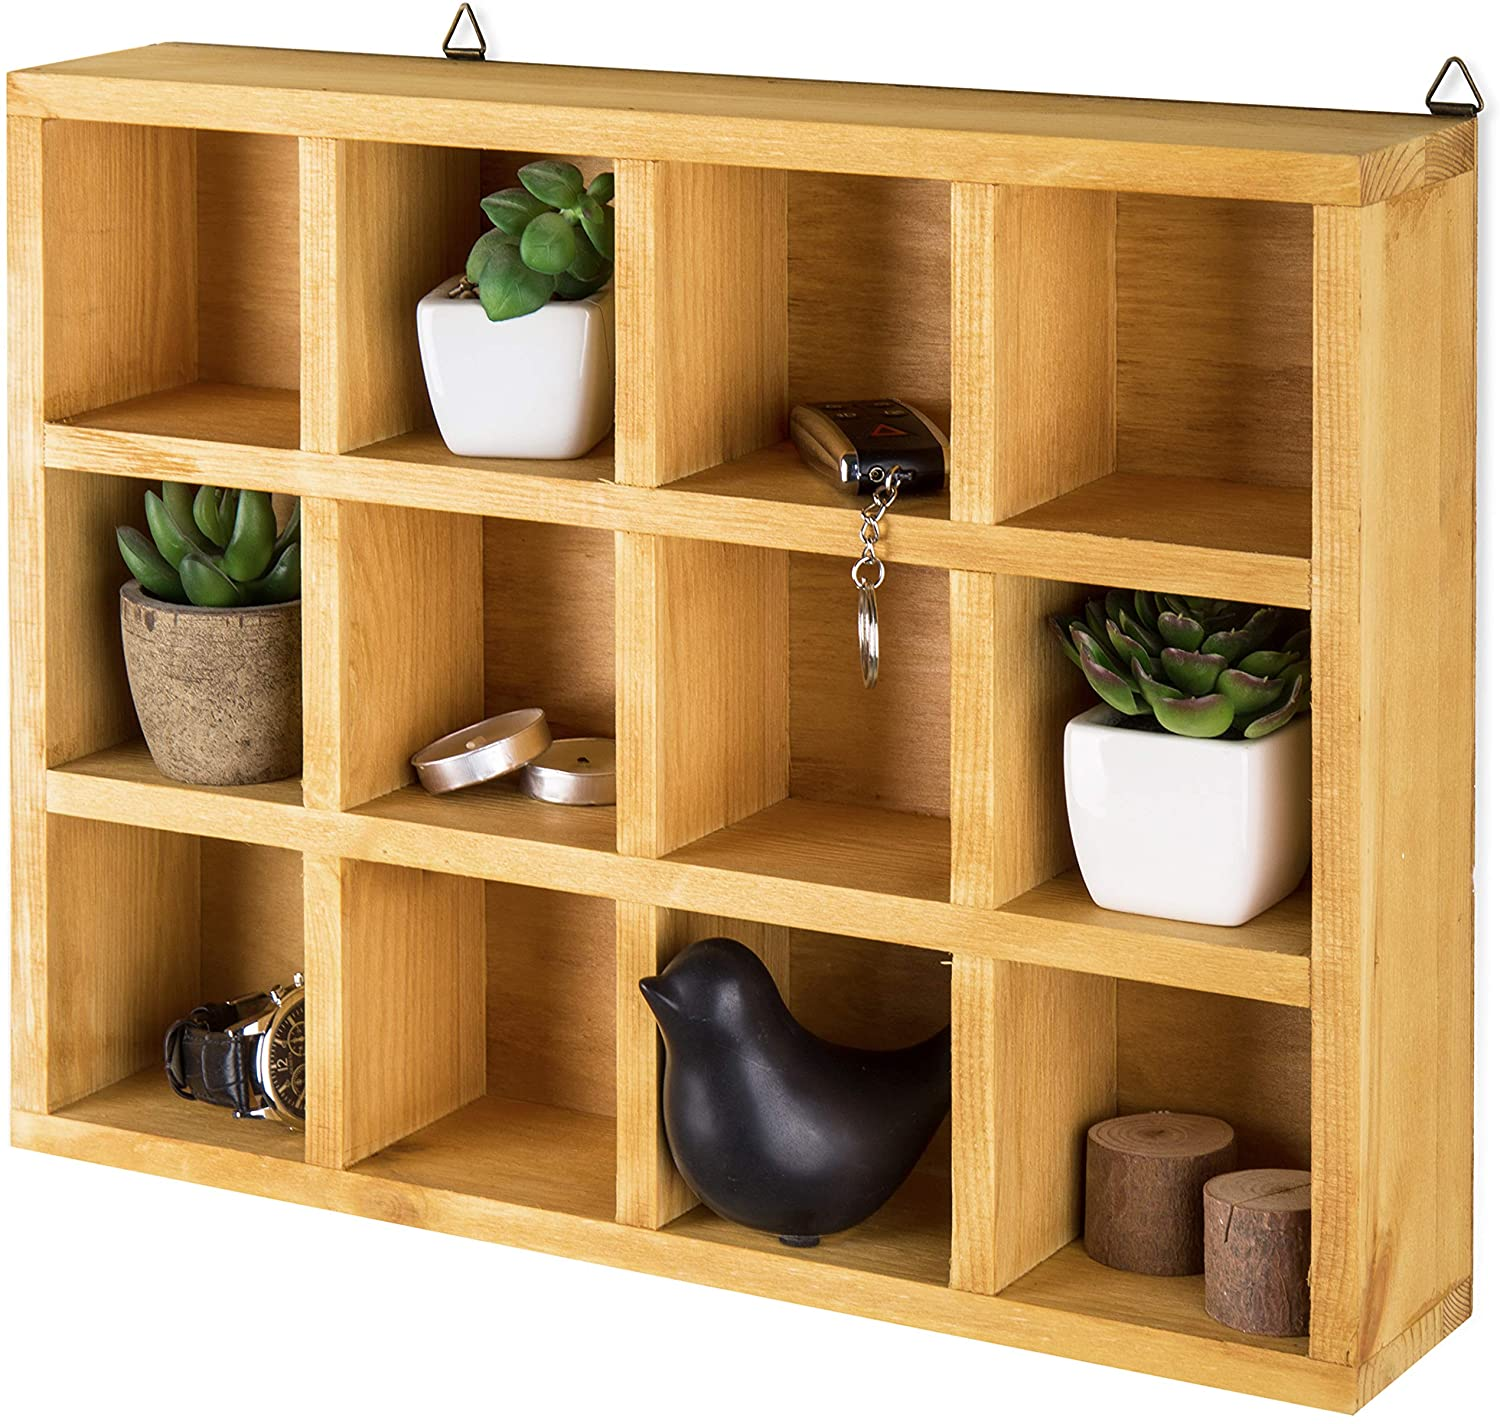 Mygift Wooden Freestanding Wall Mounted 12 Compartment Shadow Box Display Shelf Shelving Unit Home Kitchen